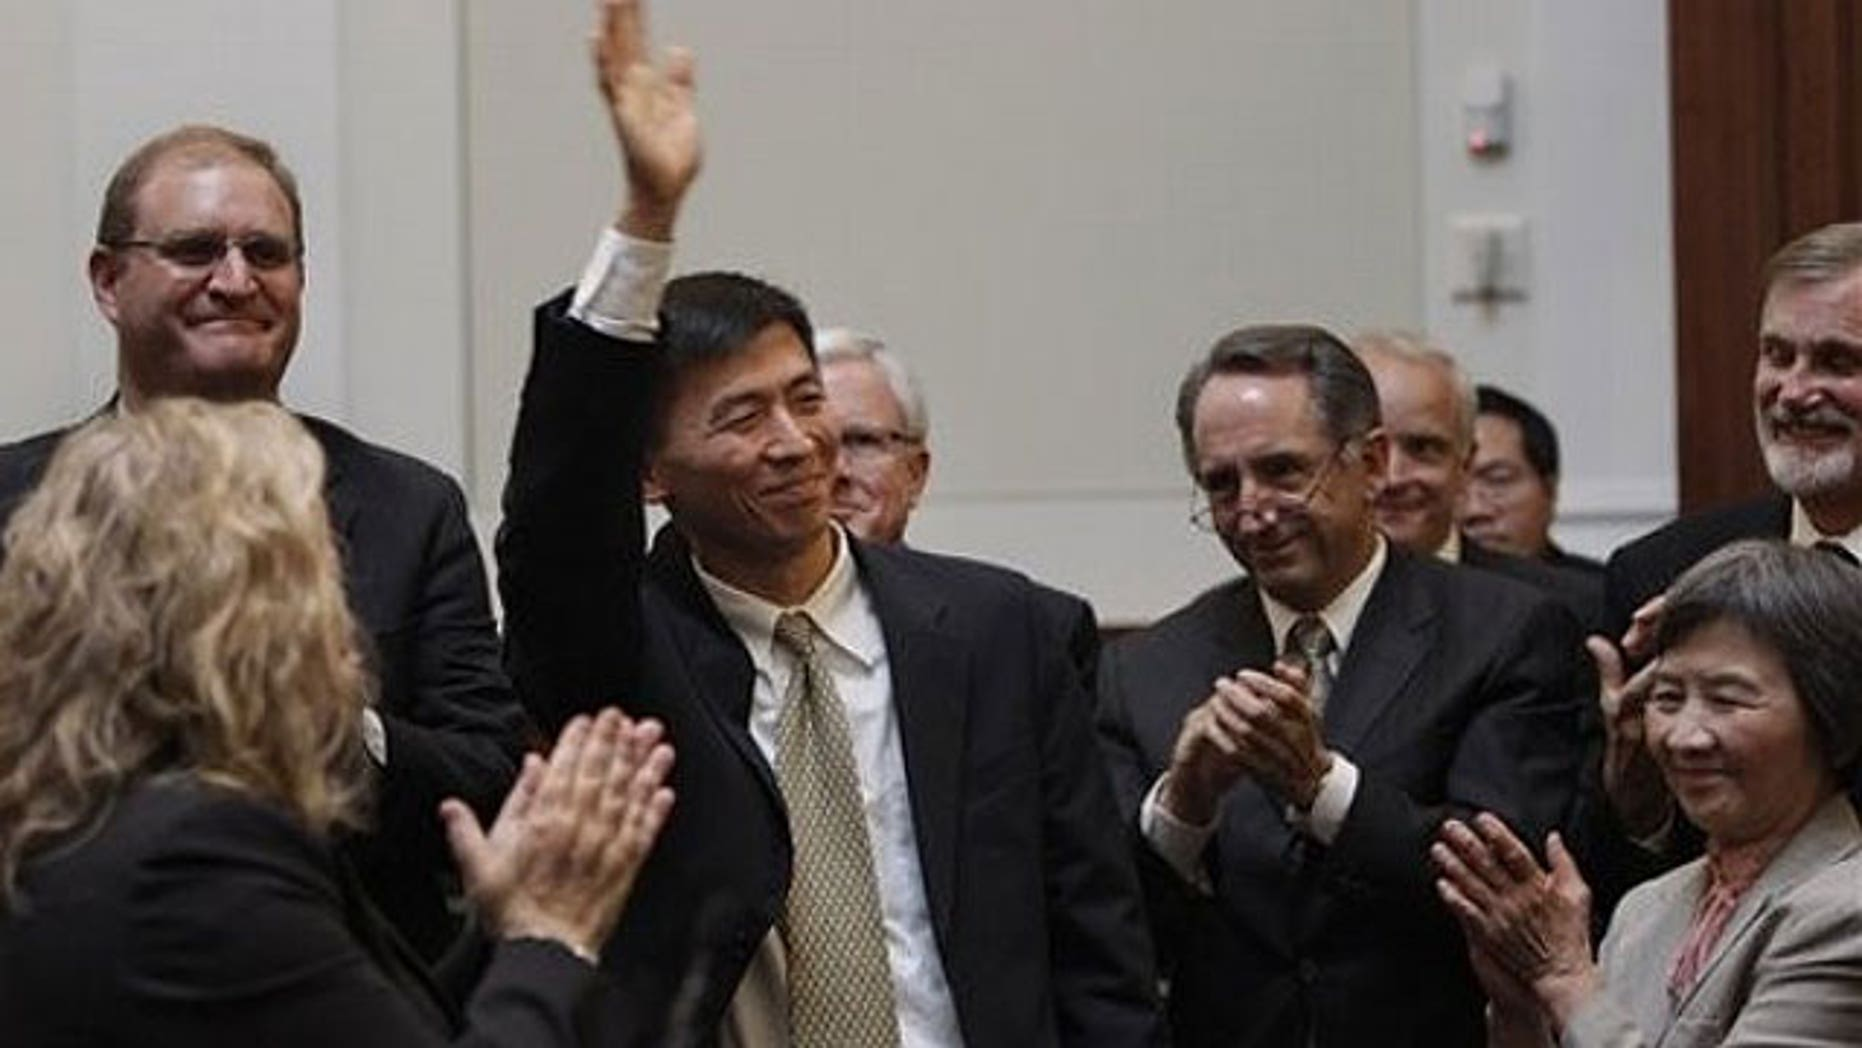 August 31: University of California, Berkeley law professor Goodwin Liu waves after he was confirmed by a three member appointment board of the Commission on Judicial Appointments in San Francisco.